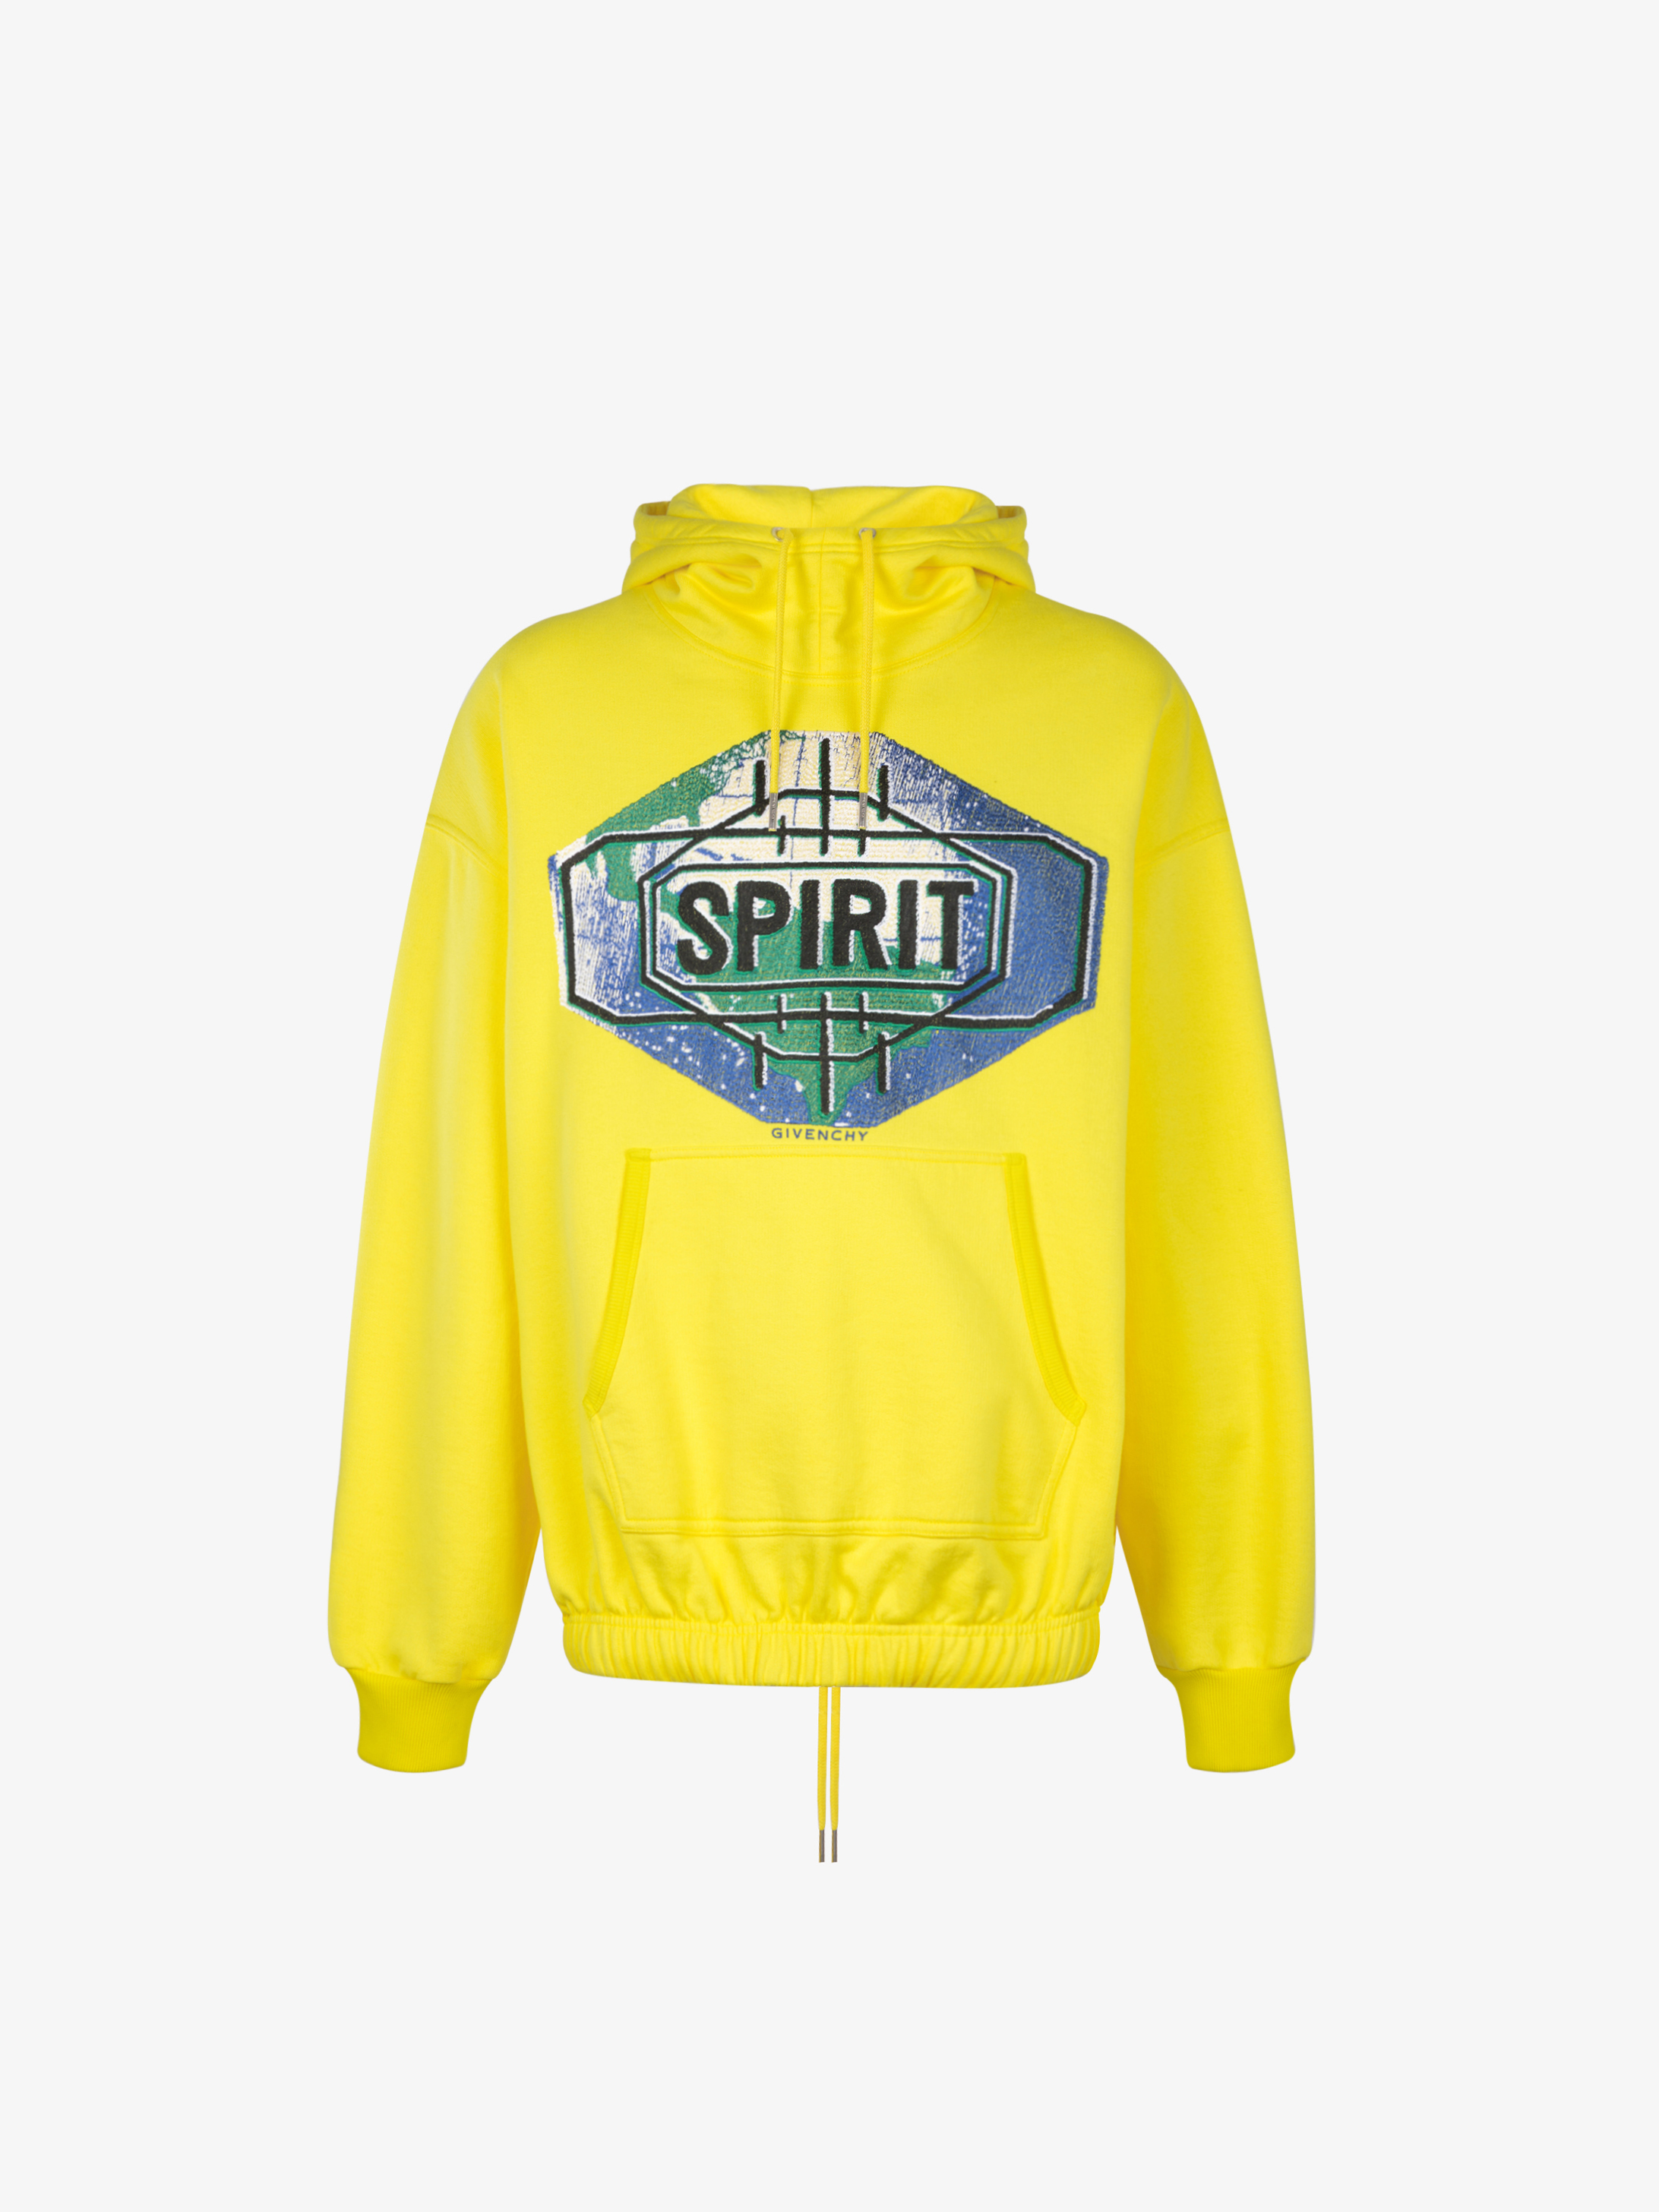 Spirit embroidered oversized hoodie